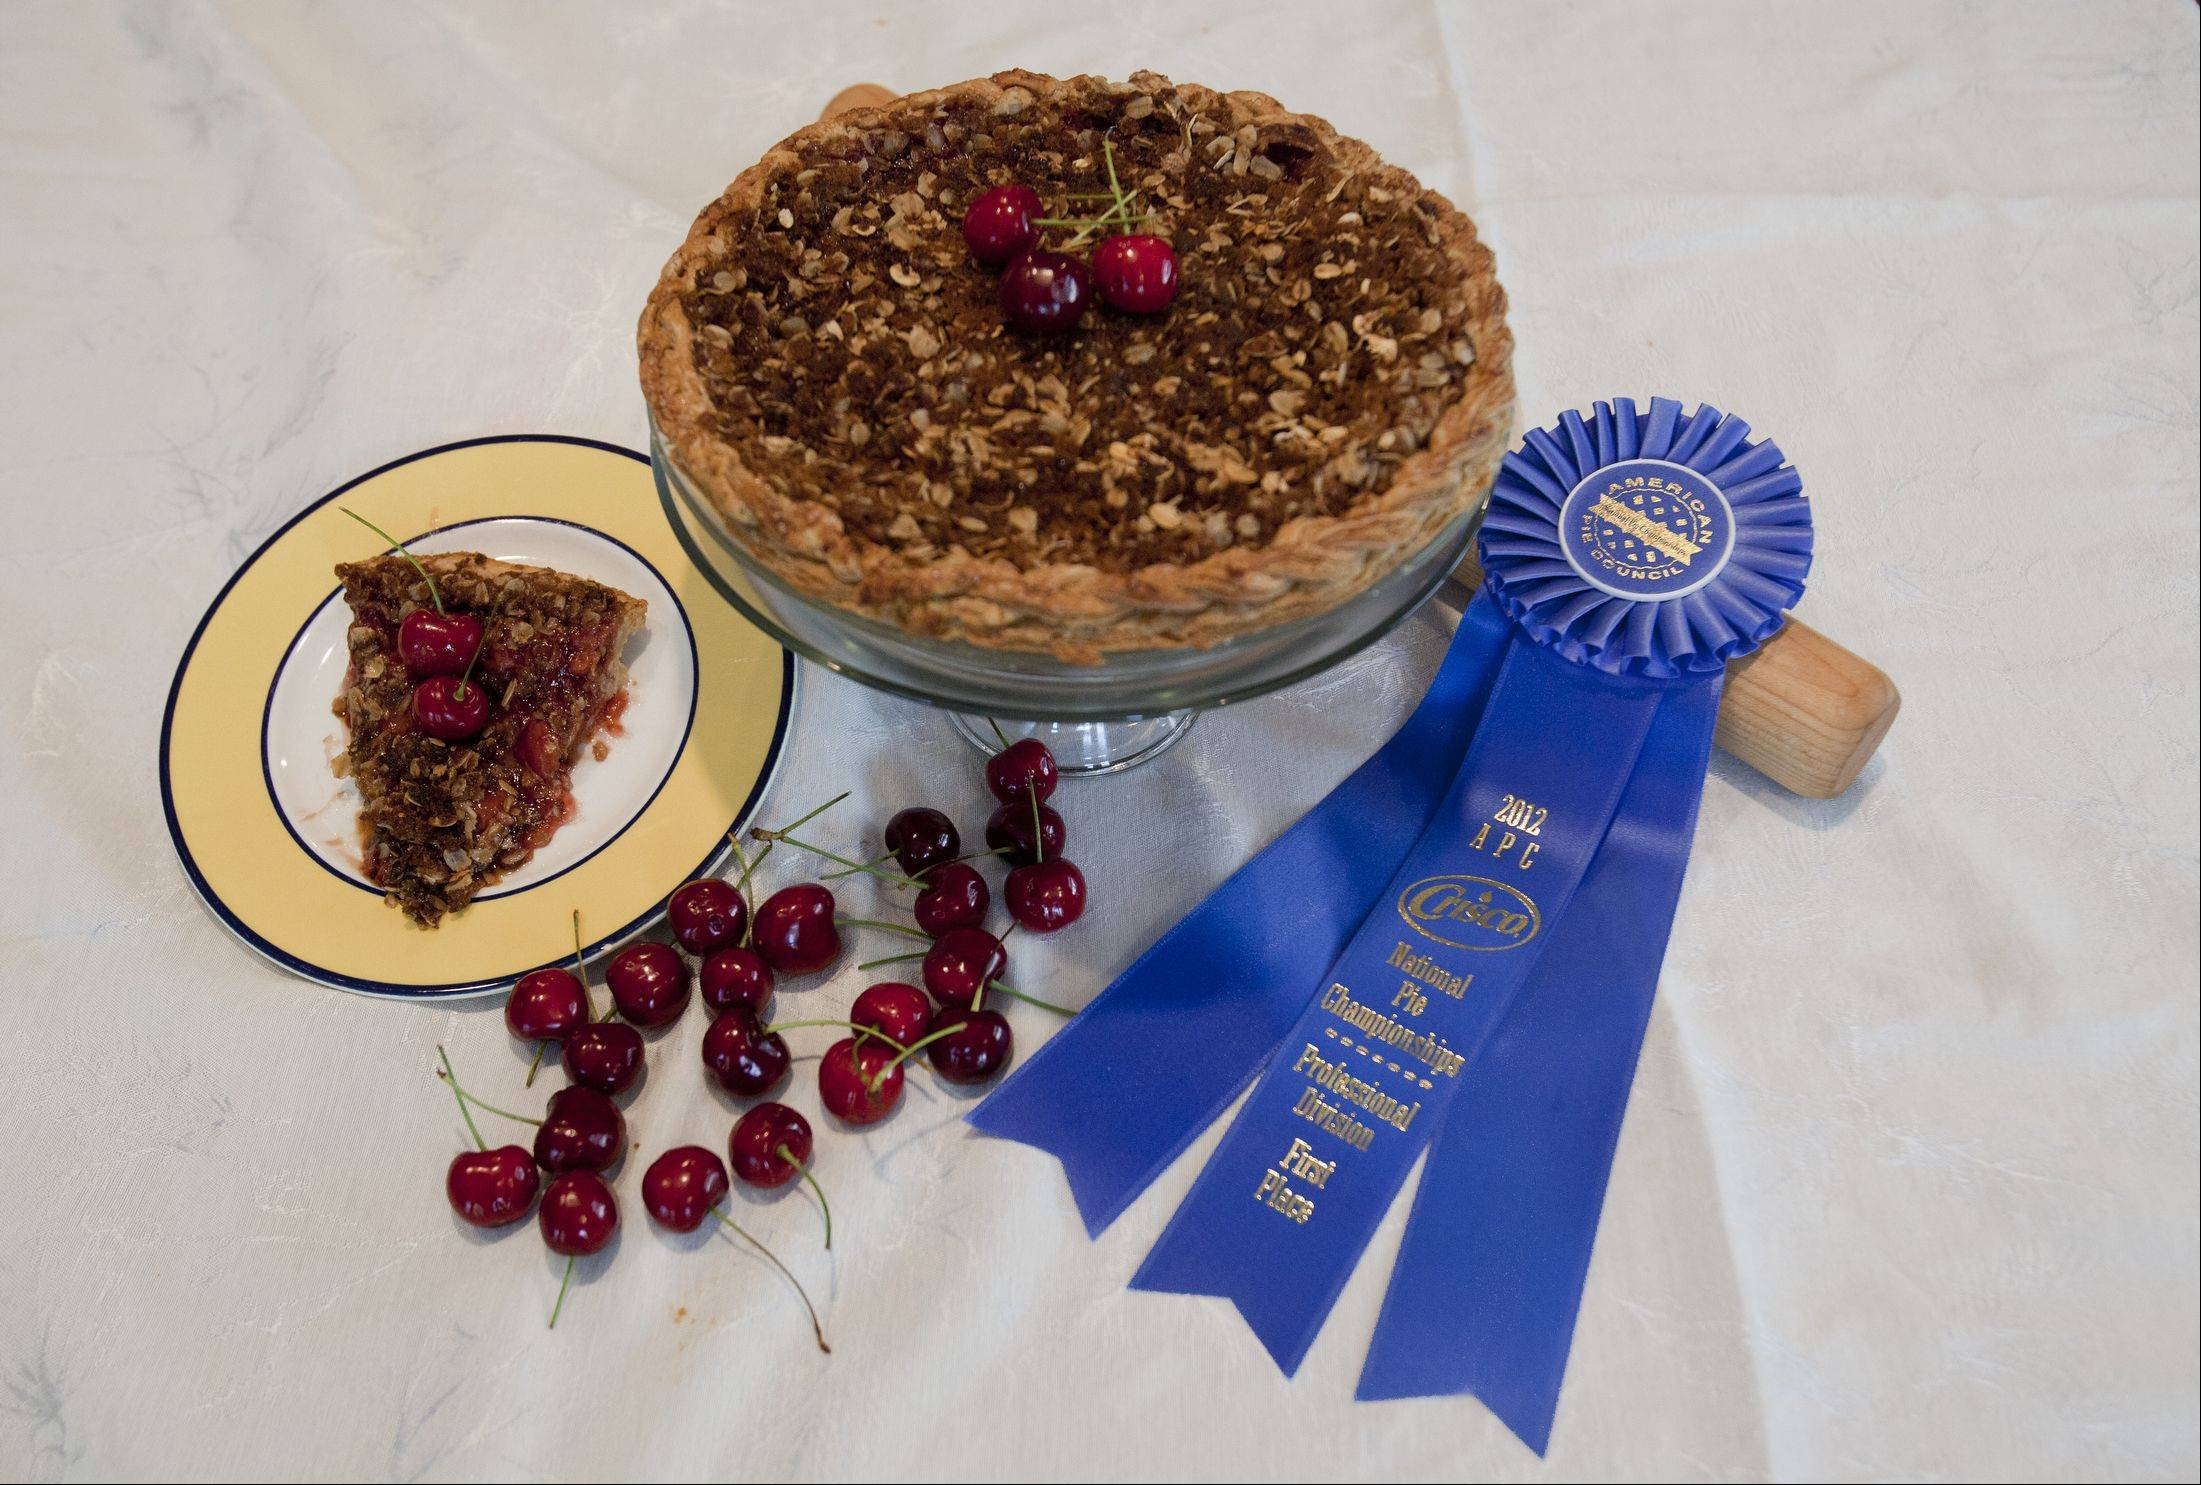 Chef Matt Zagorski's cherry pie won first place at the American Pie Council/ Crisco National Pie Championship earlier this year.